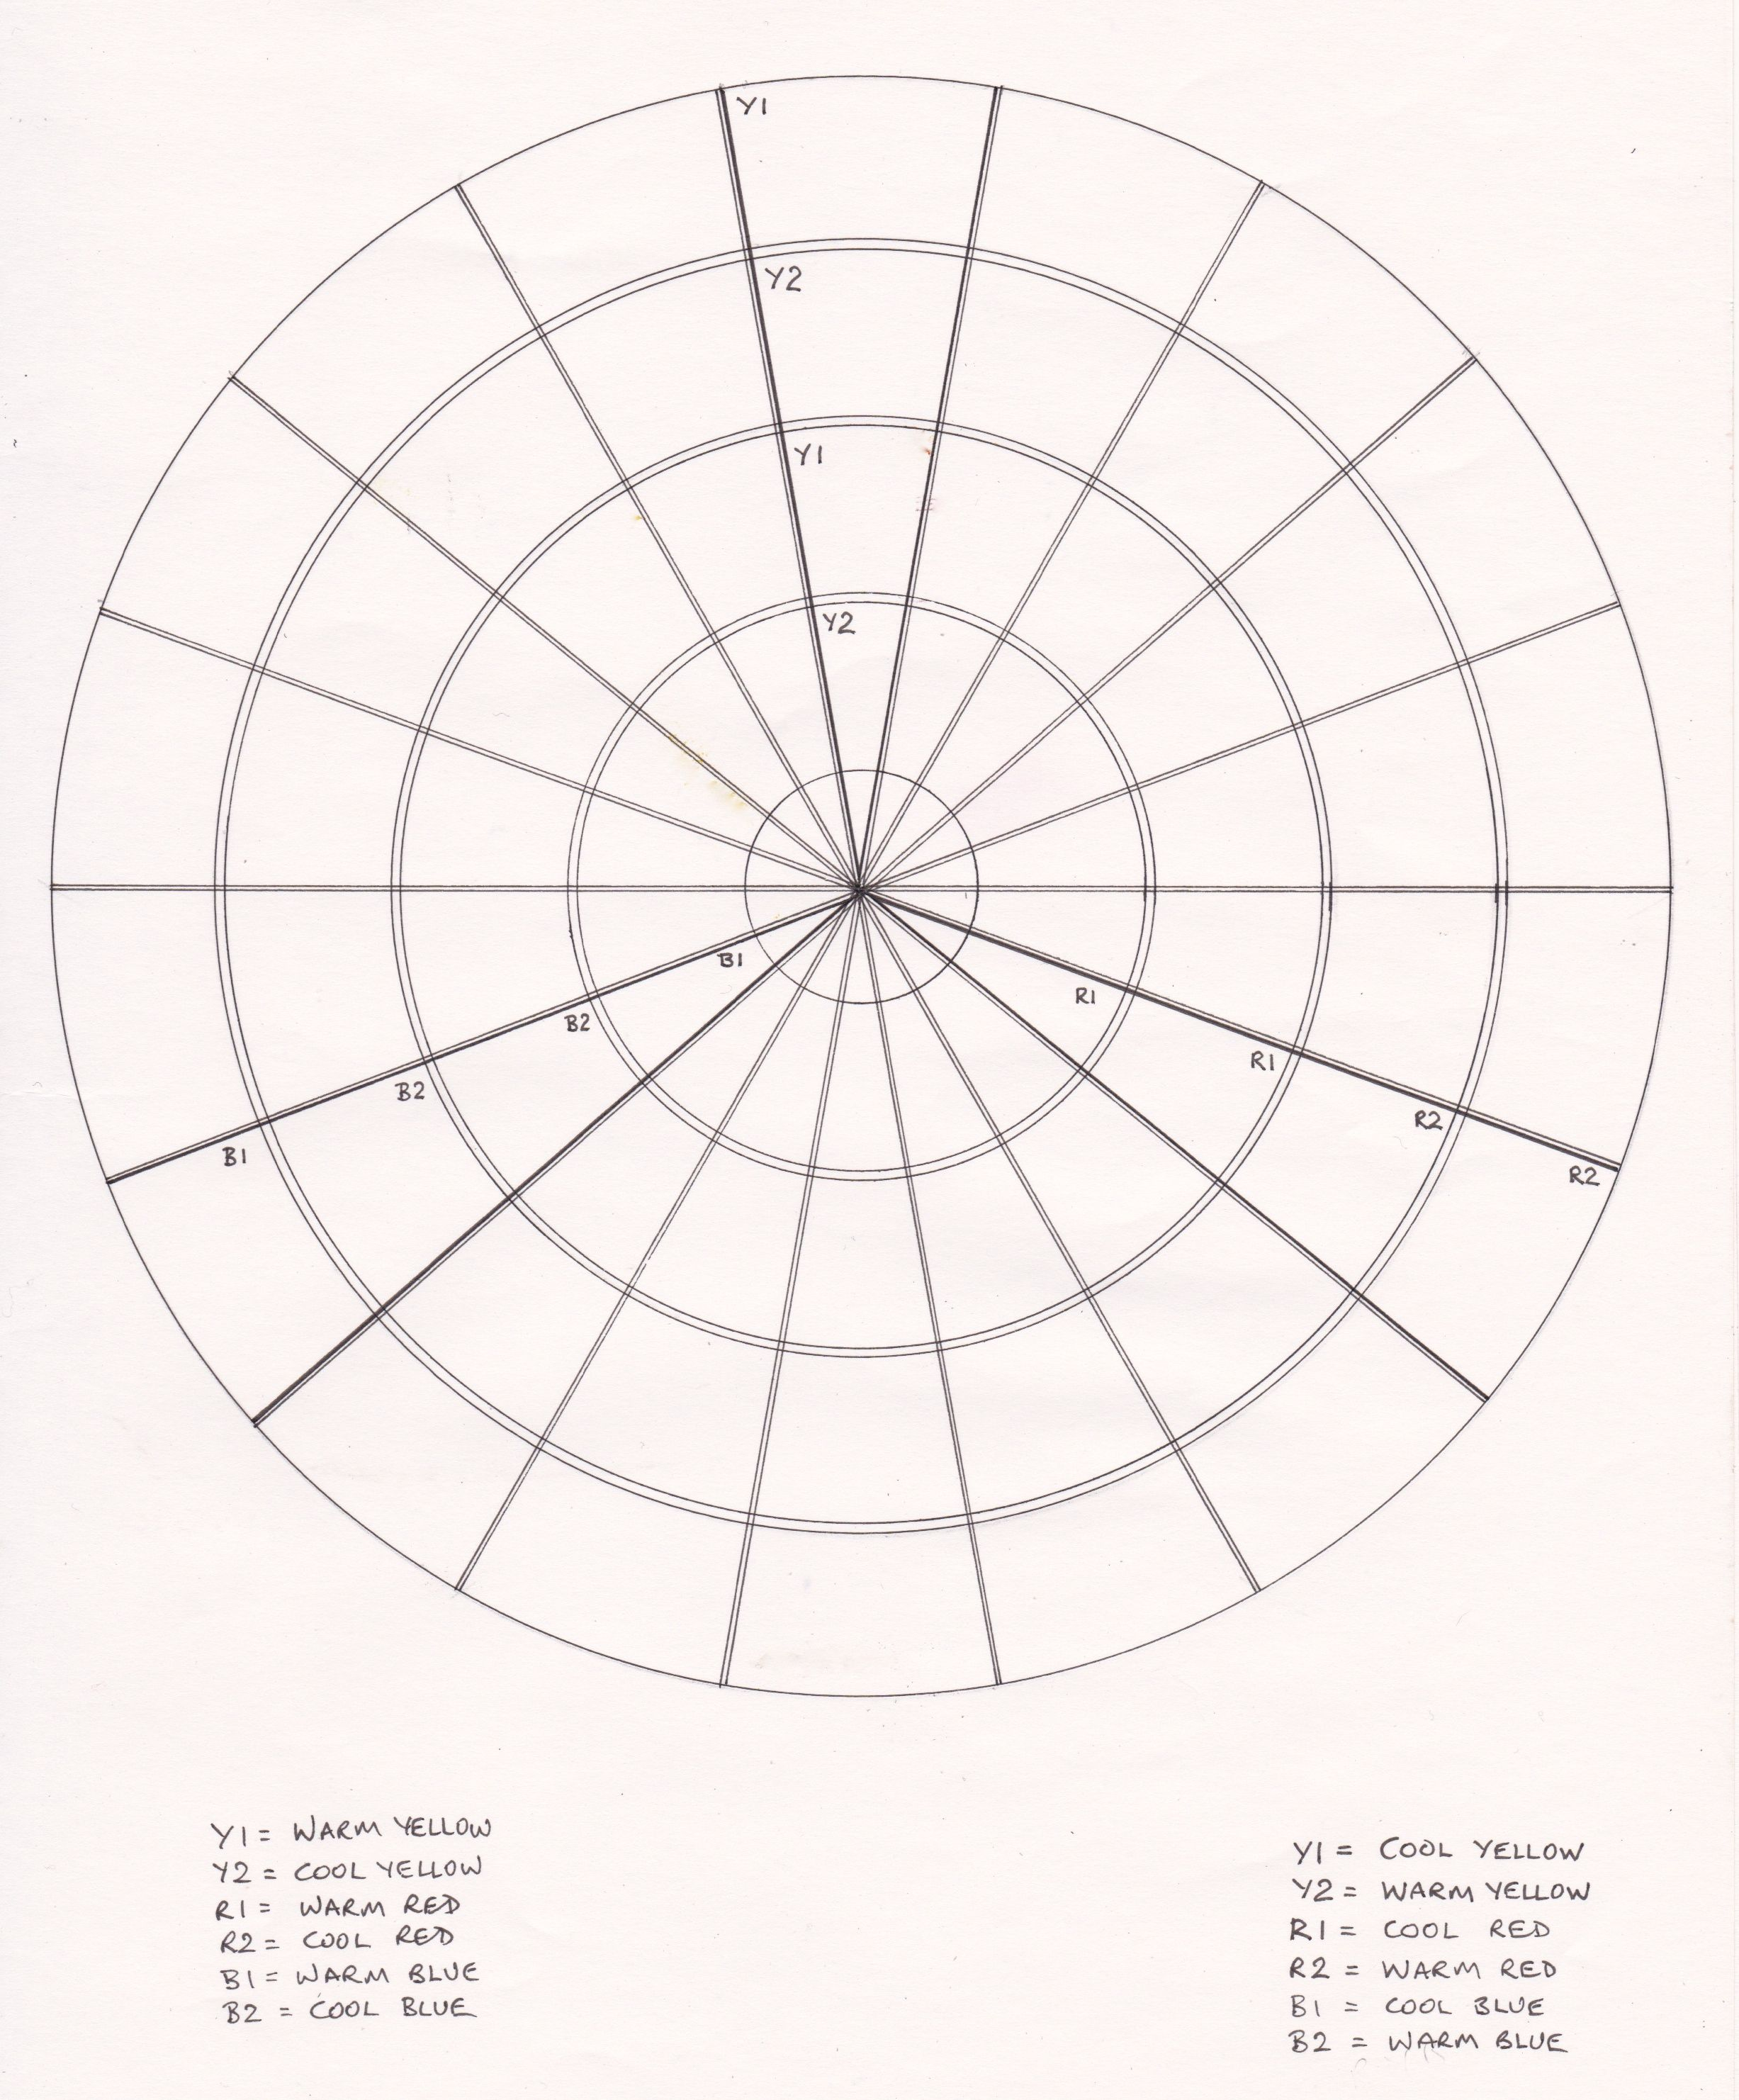 template_for_warm_and_cool_primary_wheel.jpg 2,454×2,963